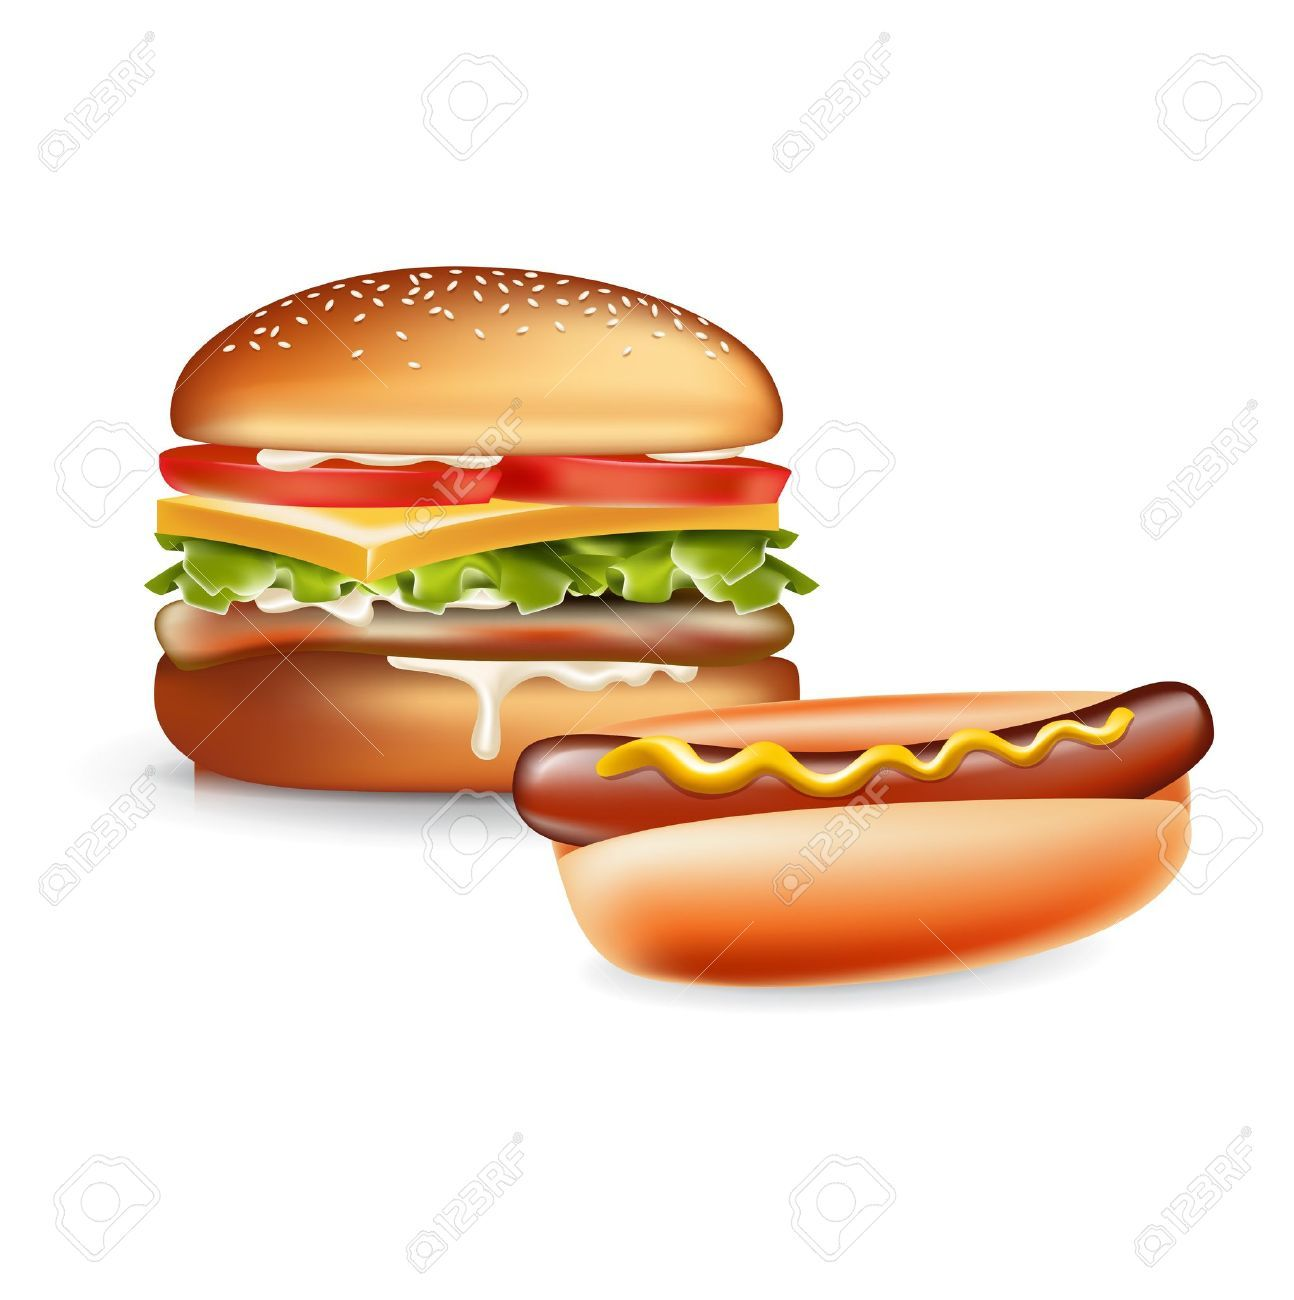 Hot dogs and hamburgers clipart banner free library Hotdogs and hamburgers clipart 6 » Clipart Portal banner free library